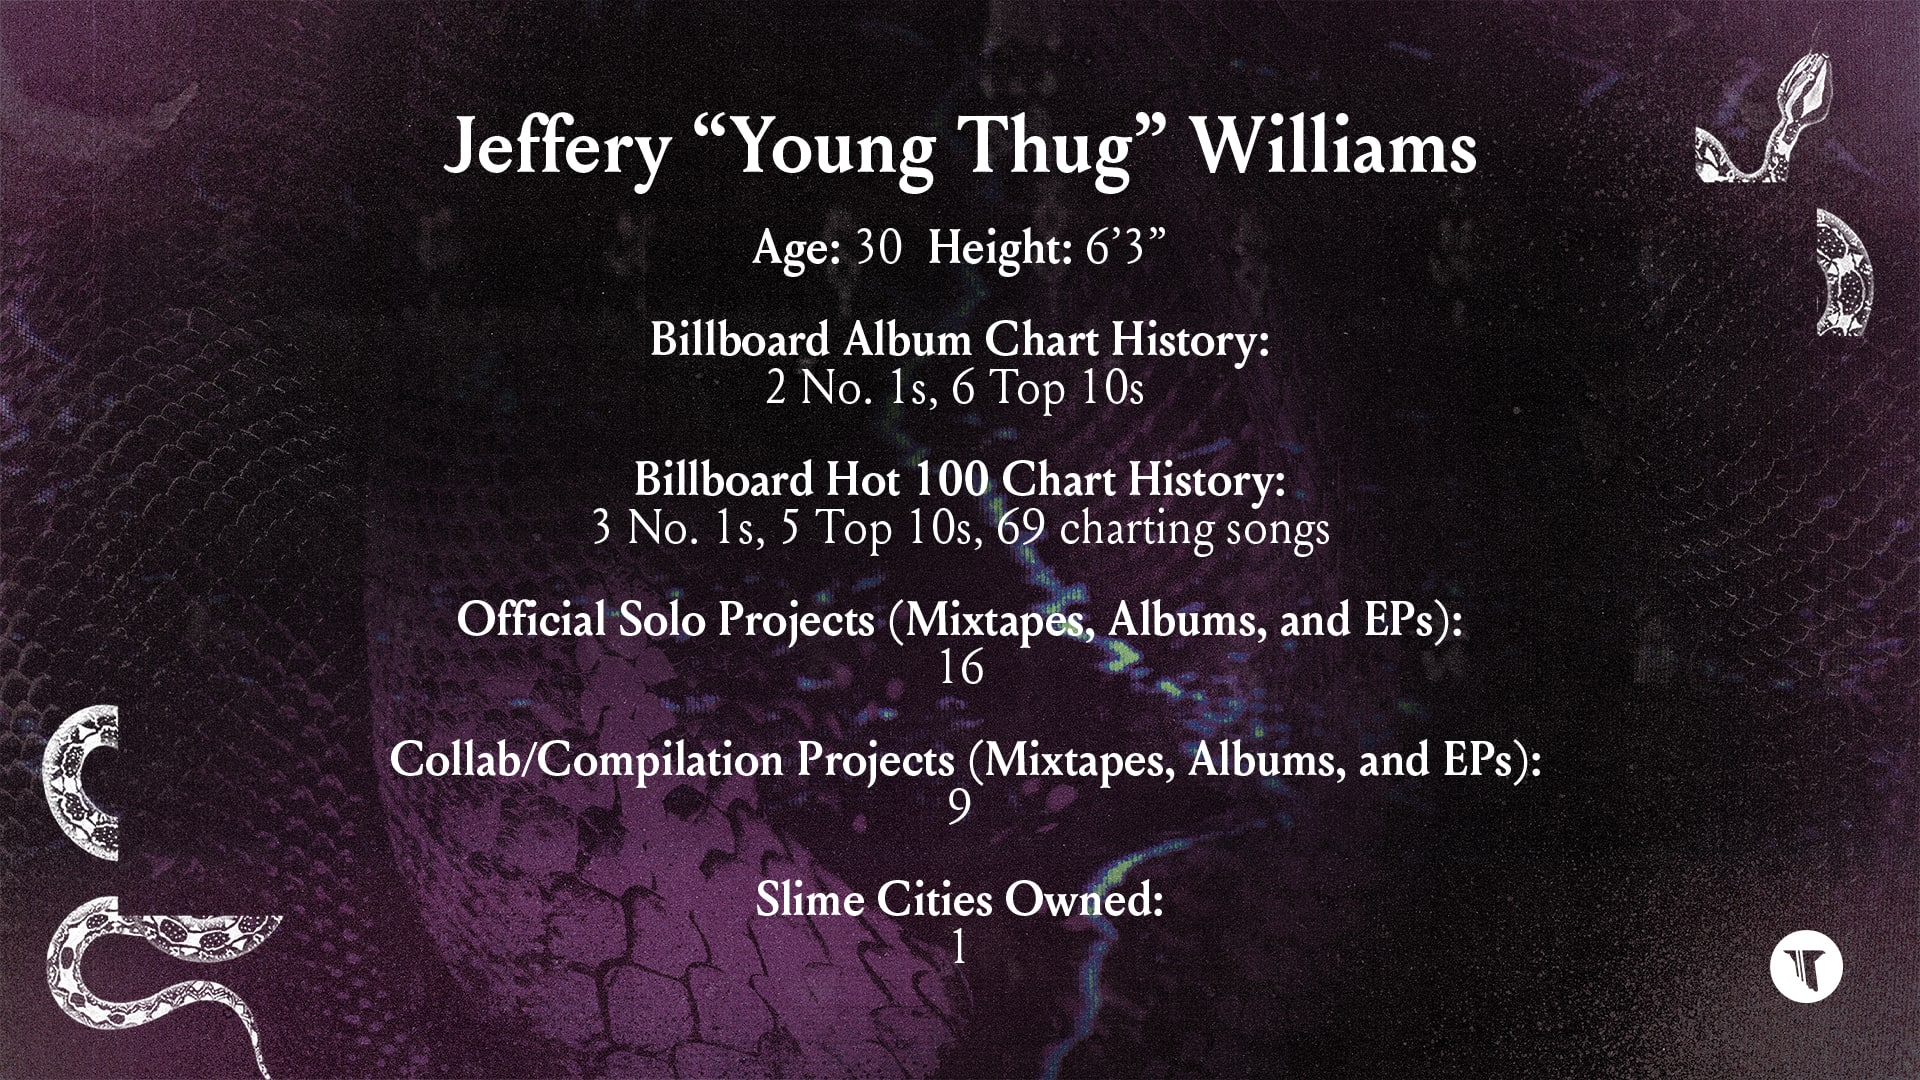 young thug info pack 2021